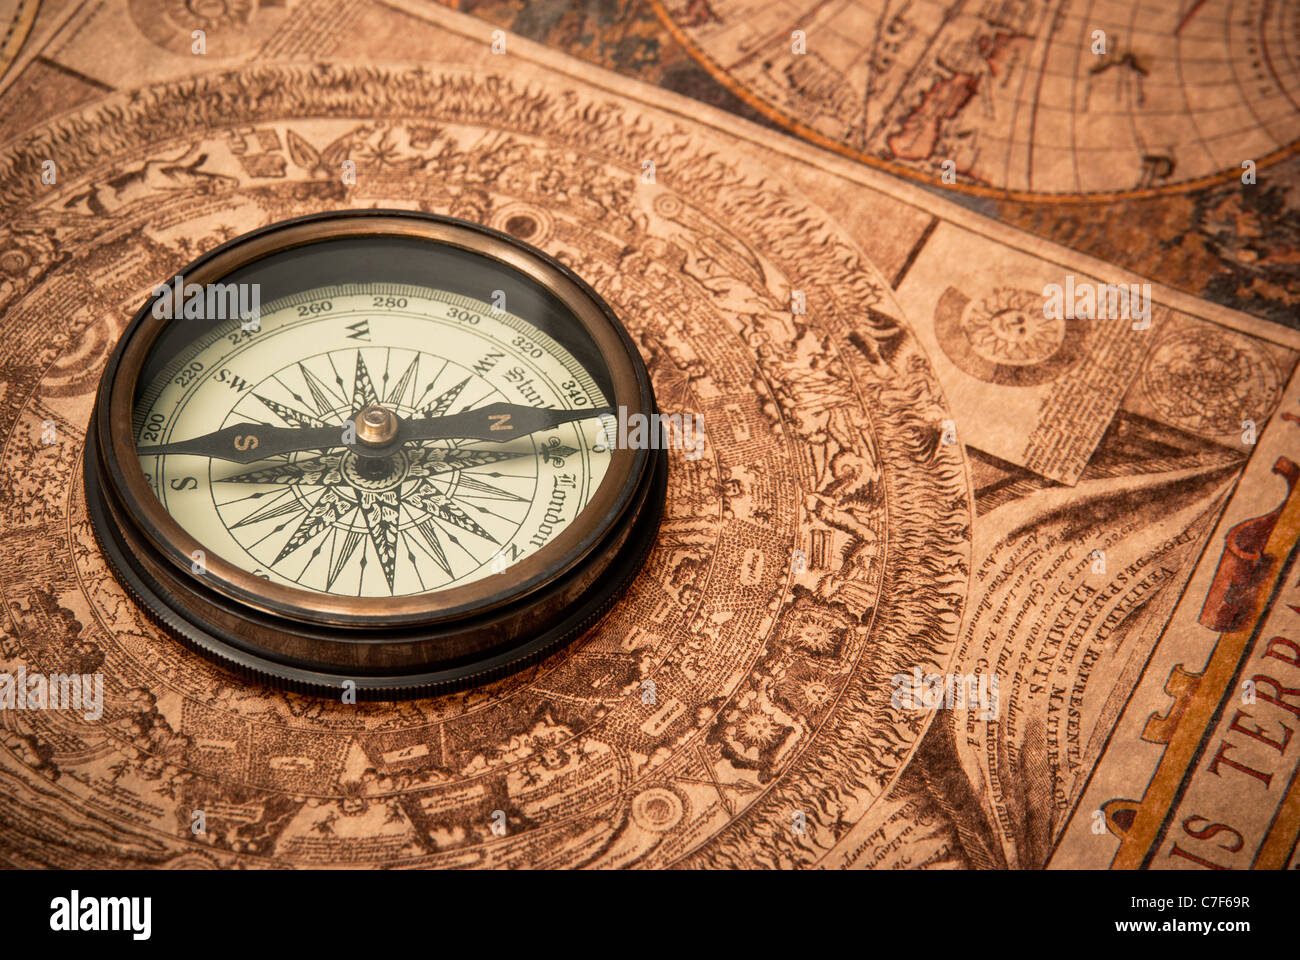 antique compass lying on old style map sepia toned stock image